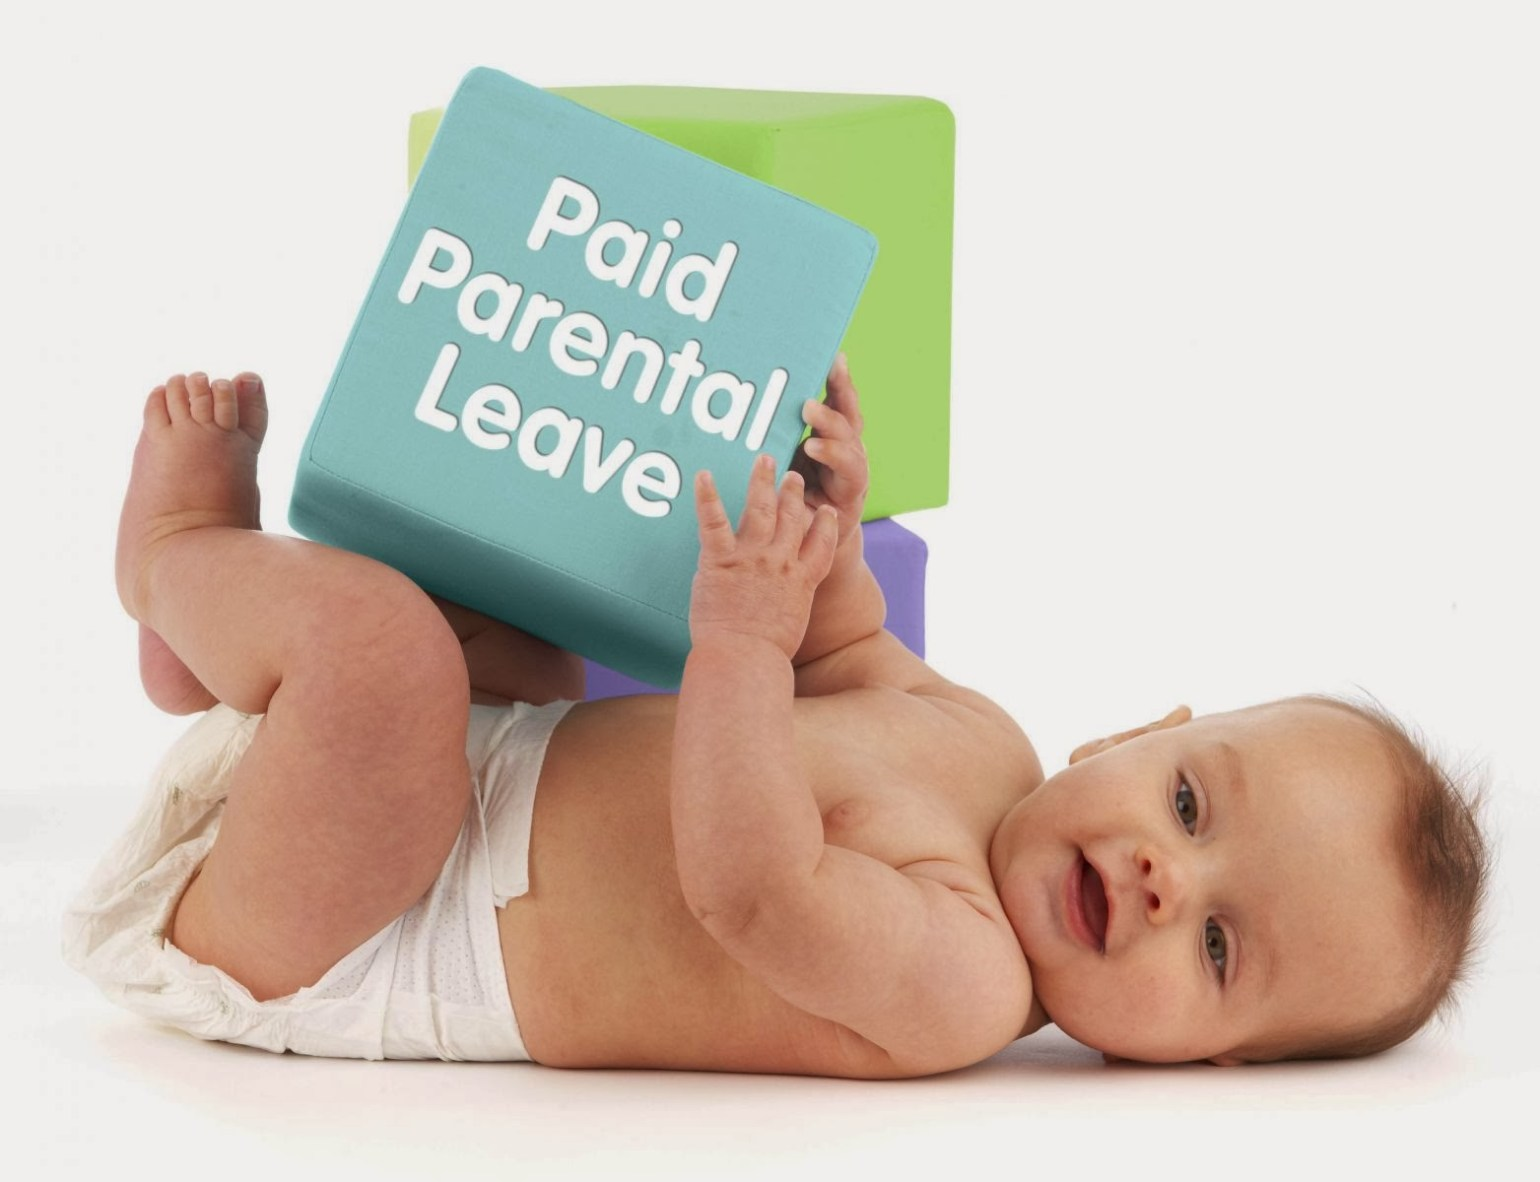 paid parental leave